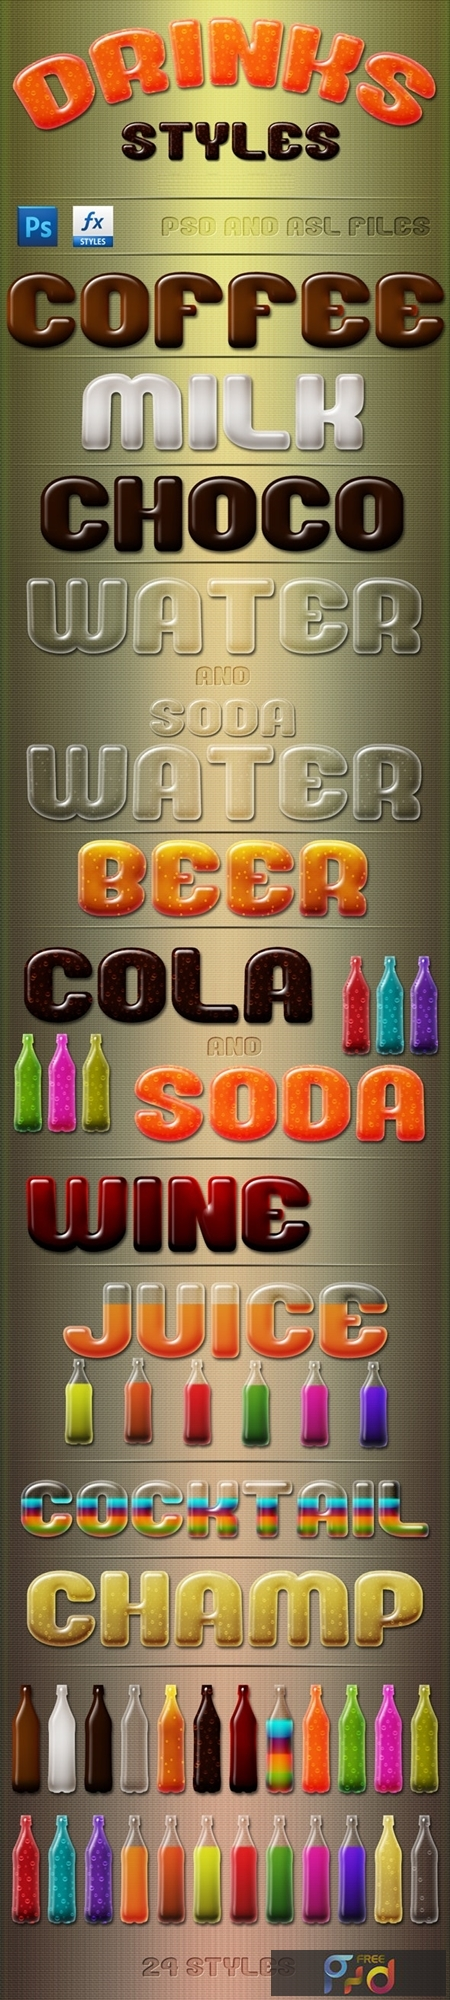 Drinks Styles Text Effects 24392259 1